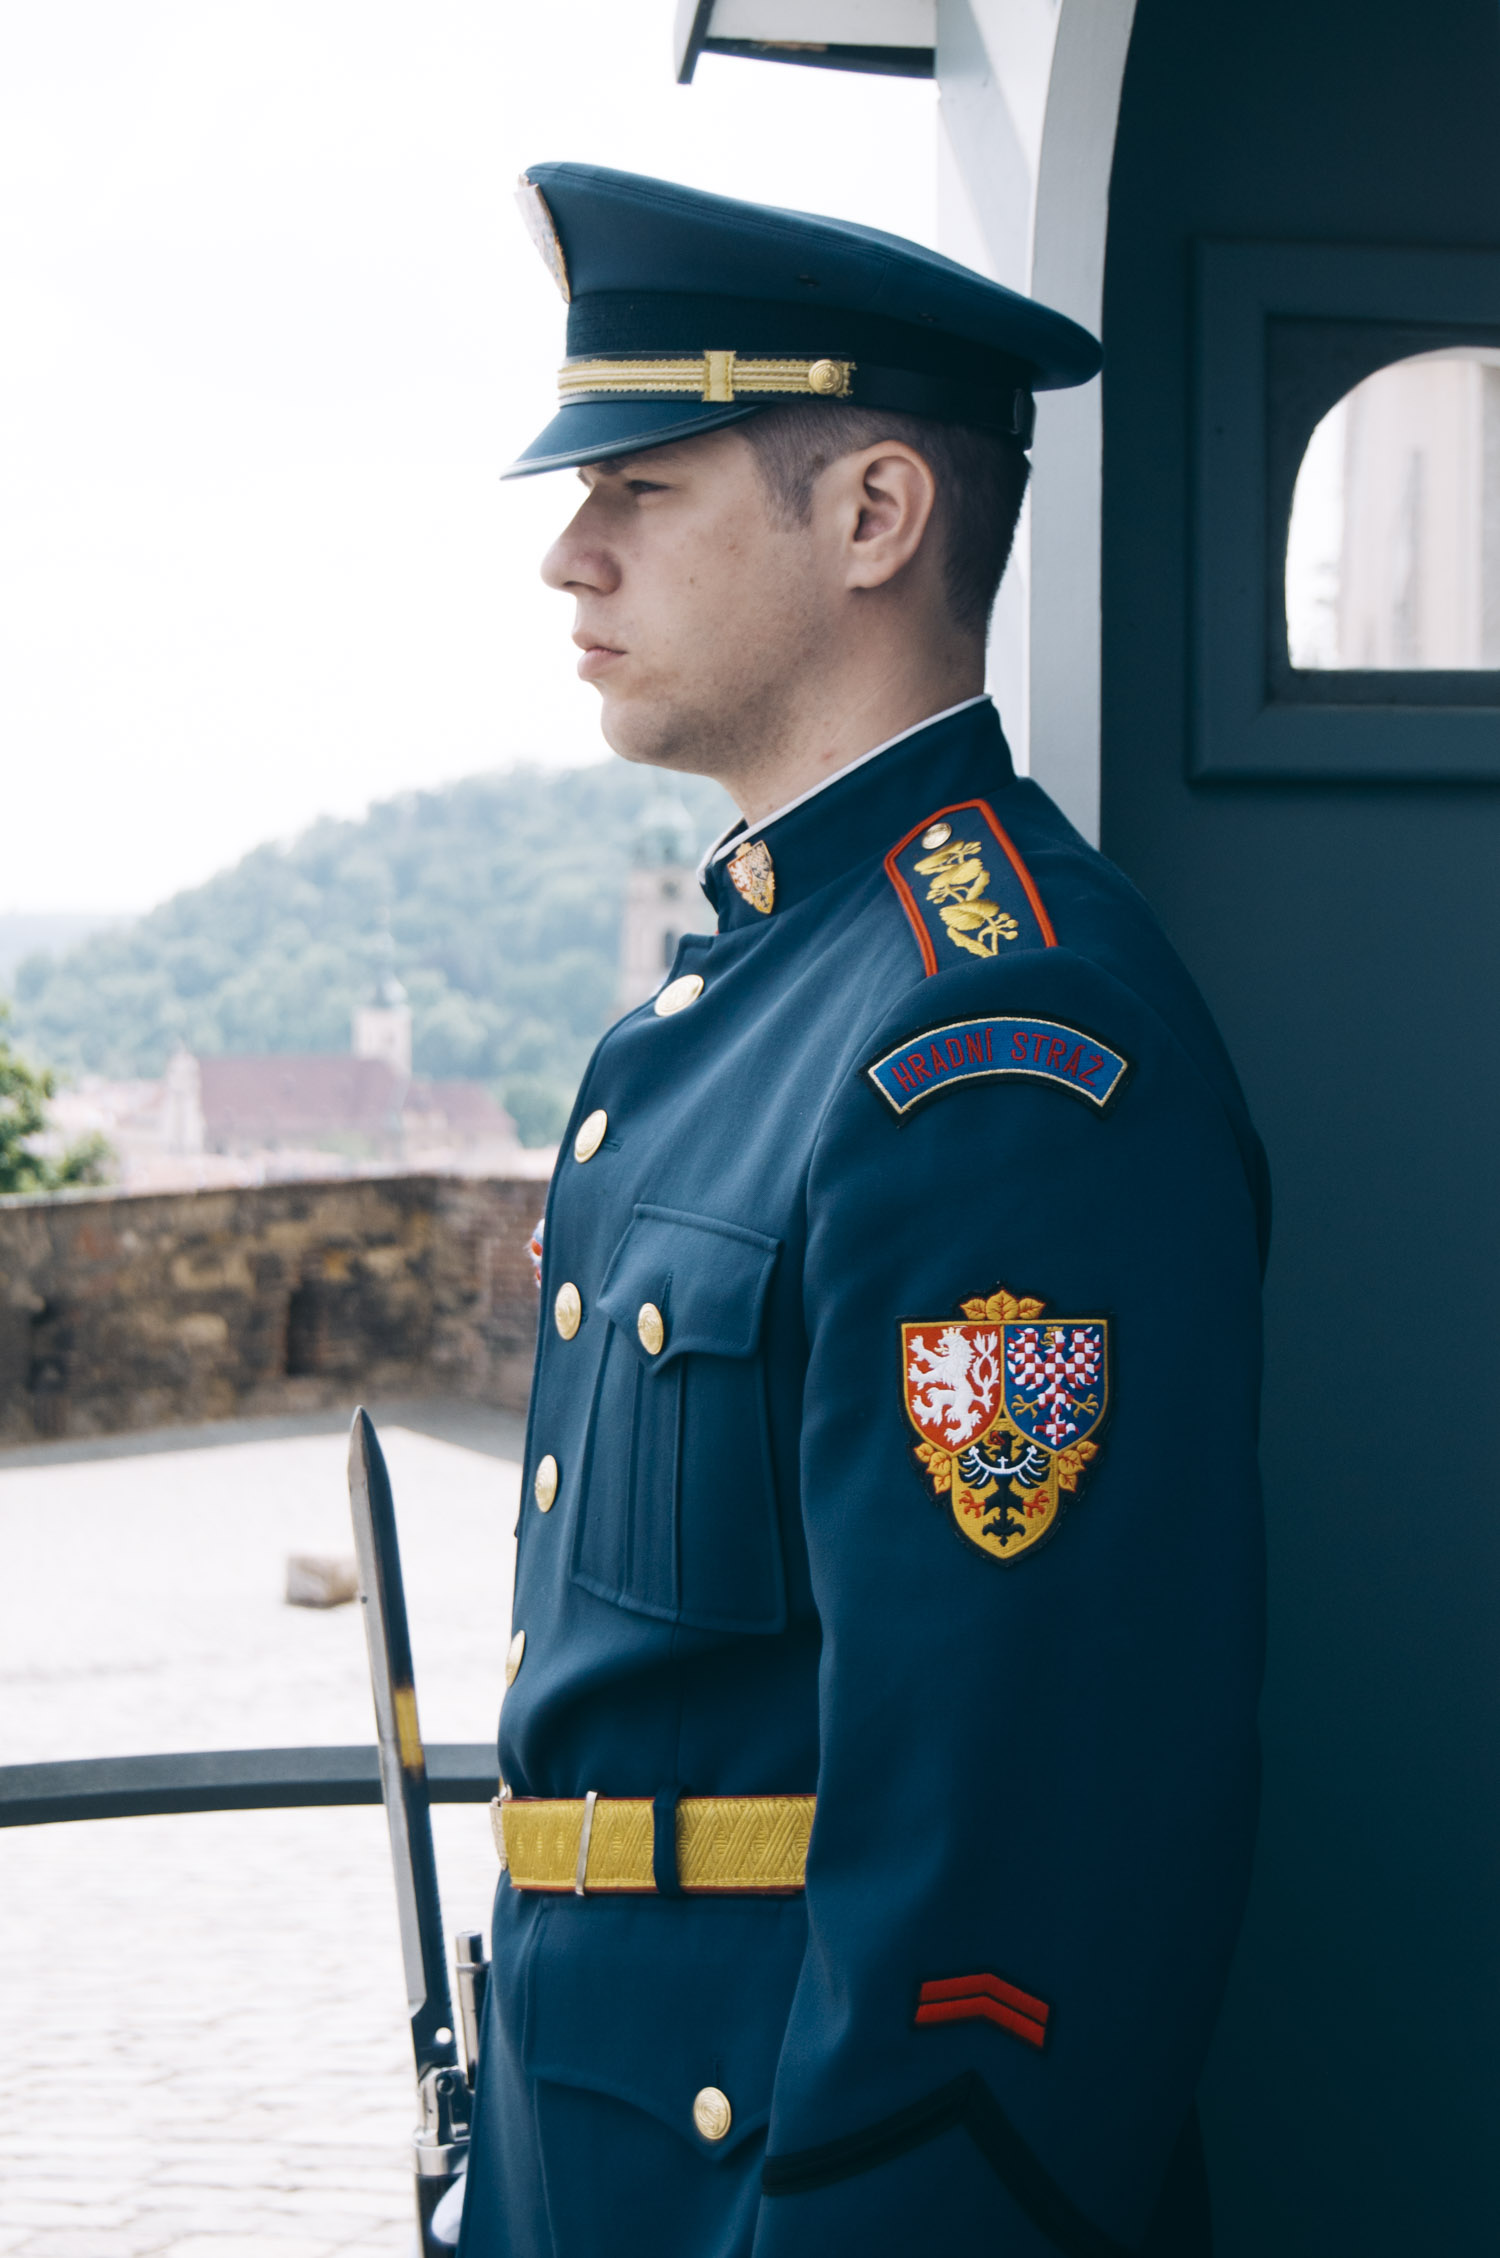 THE CASTLE GUARD - Armed Forces for the Safety of the Czech Republic. While walking through the Prague Castle, everyone certainly meets men in uniforms standing at the main entrance or patrolling in other places.You can always see them close to the President during important politic actions.